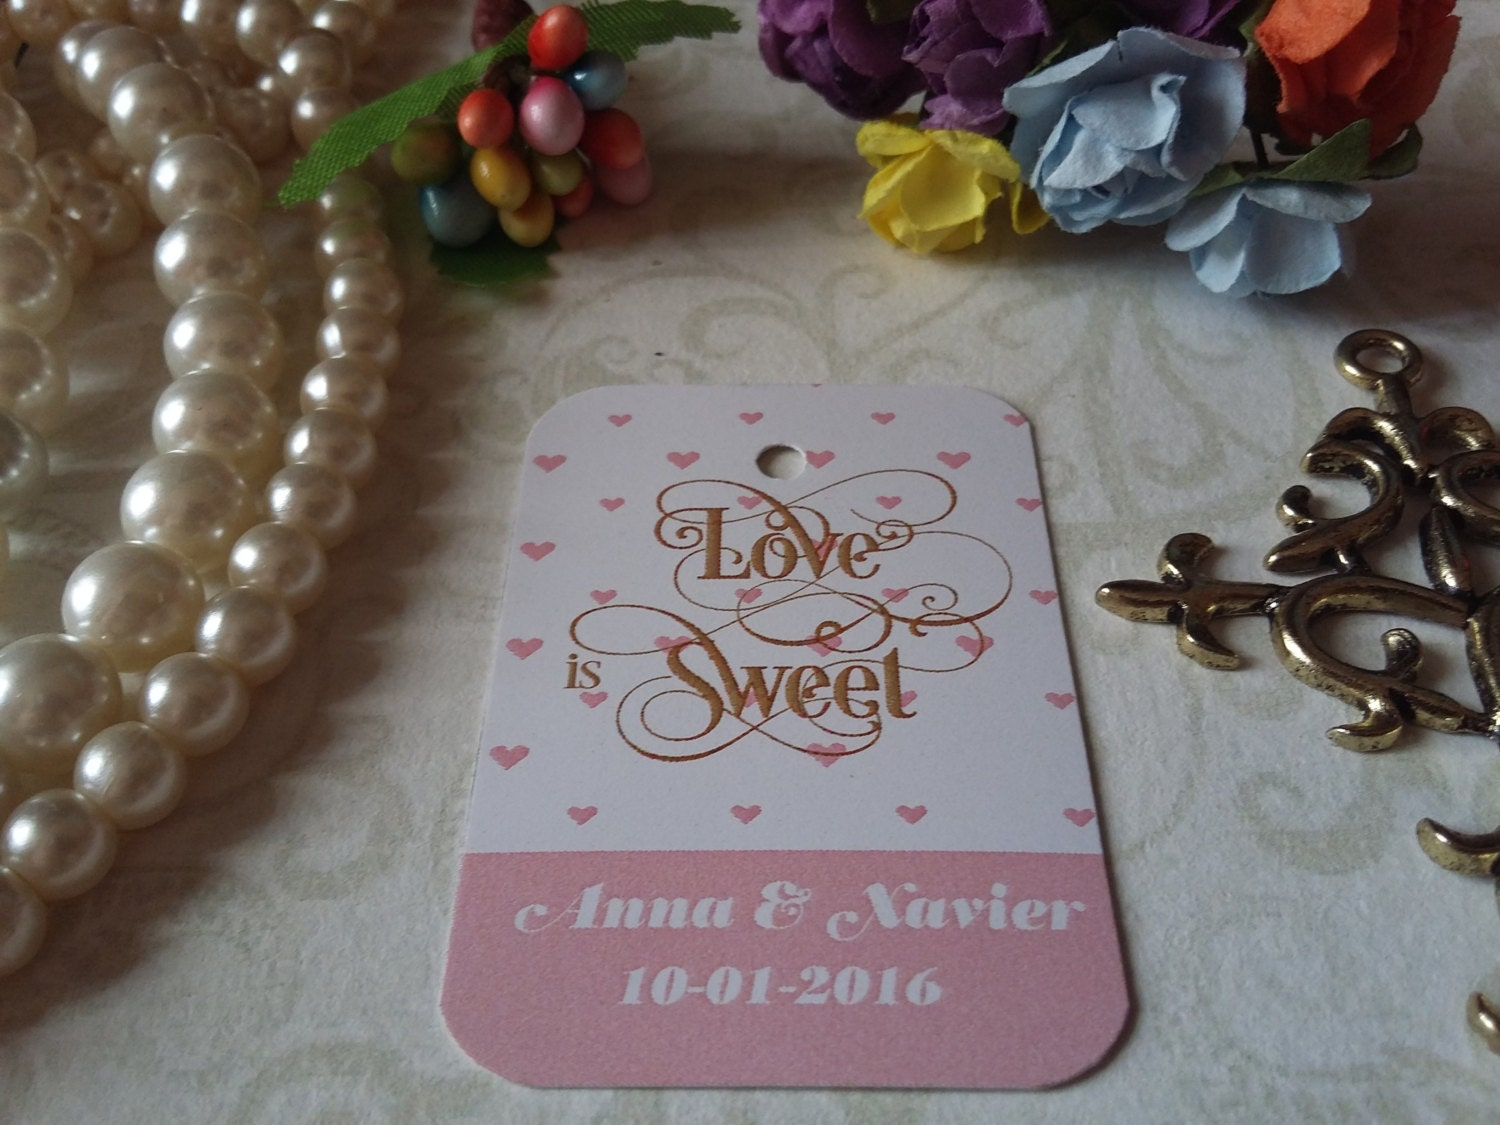 Love is sweet gift tags wedding favors bridal shower for Dulce coffee studio